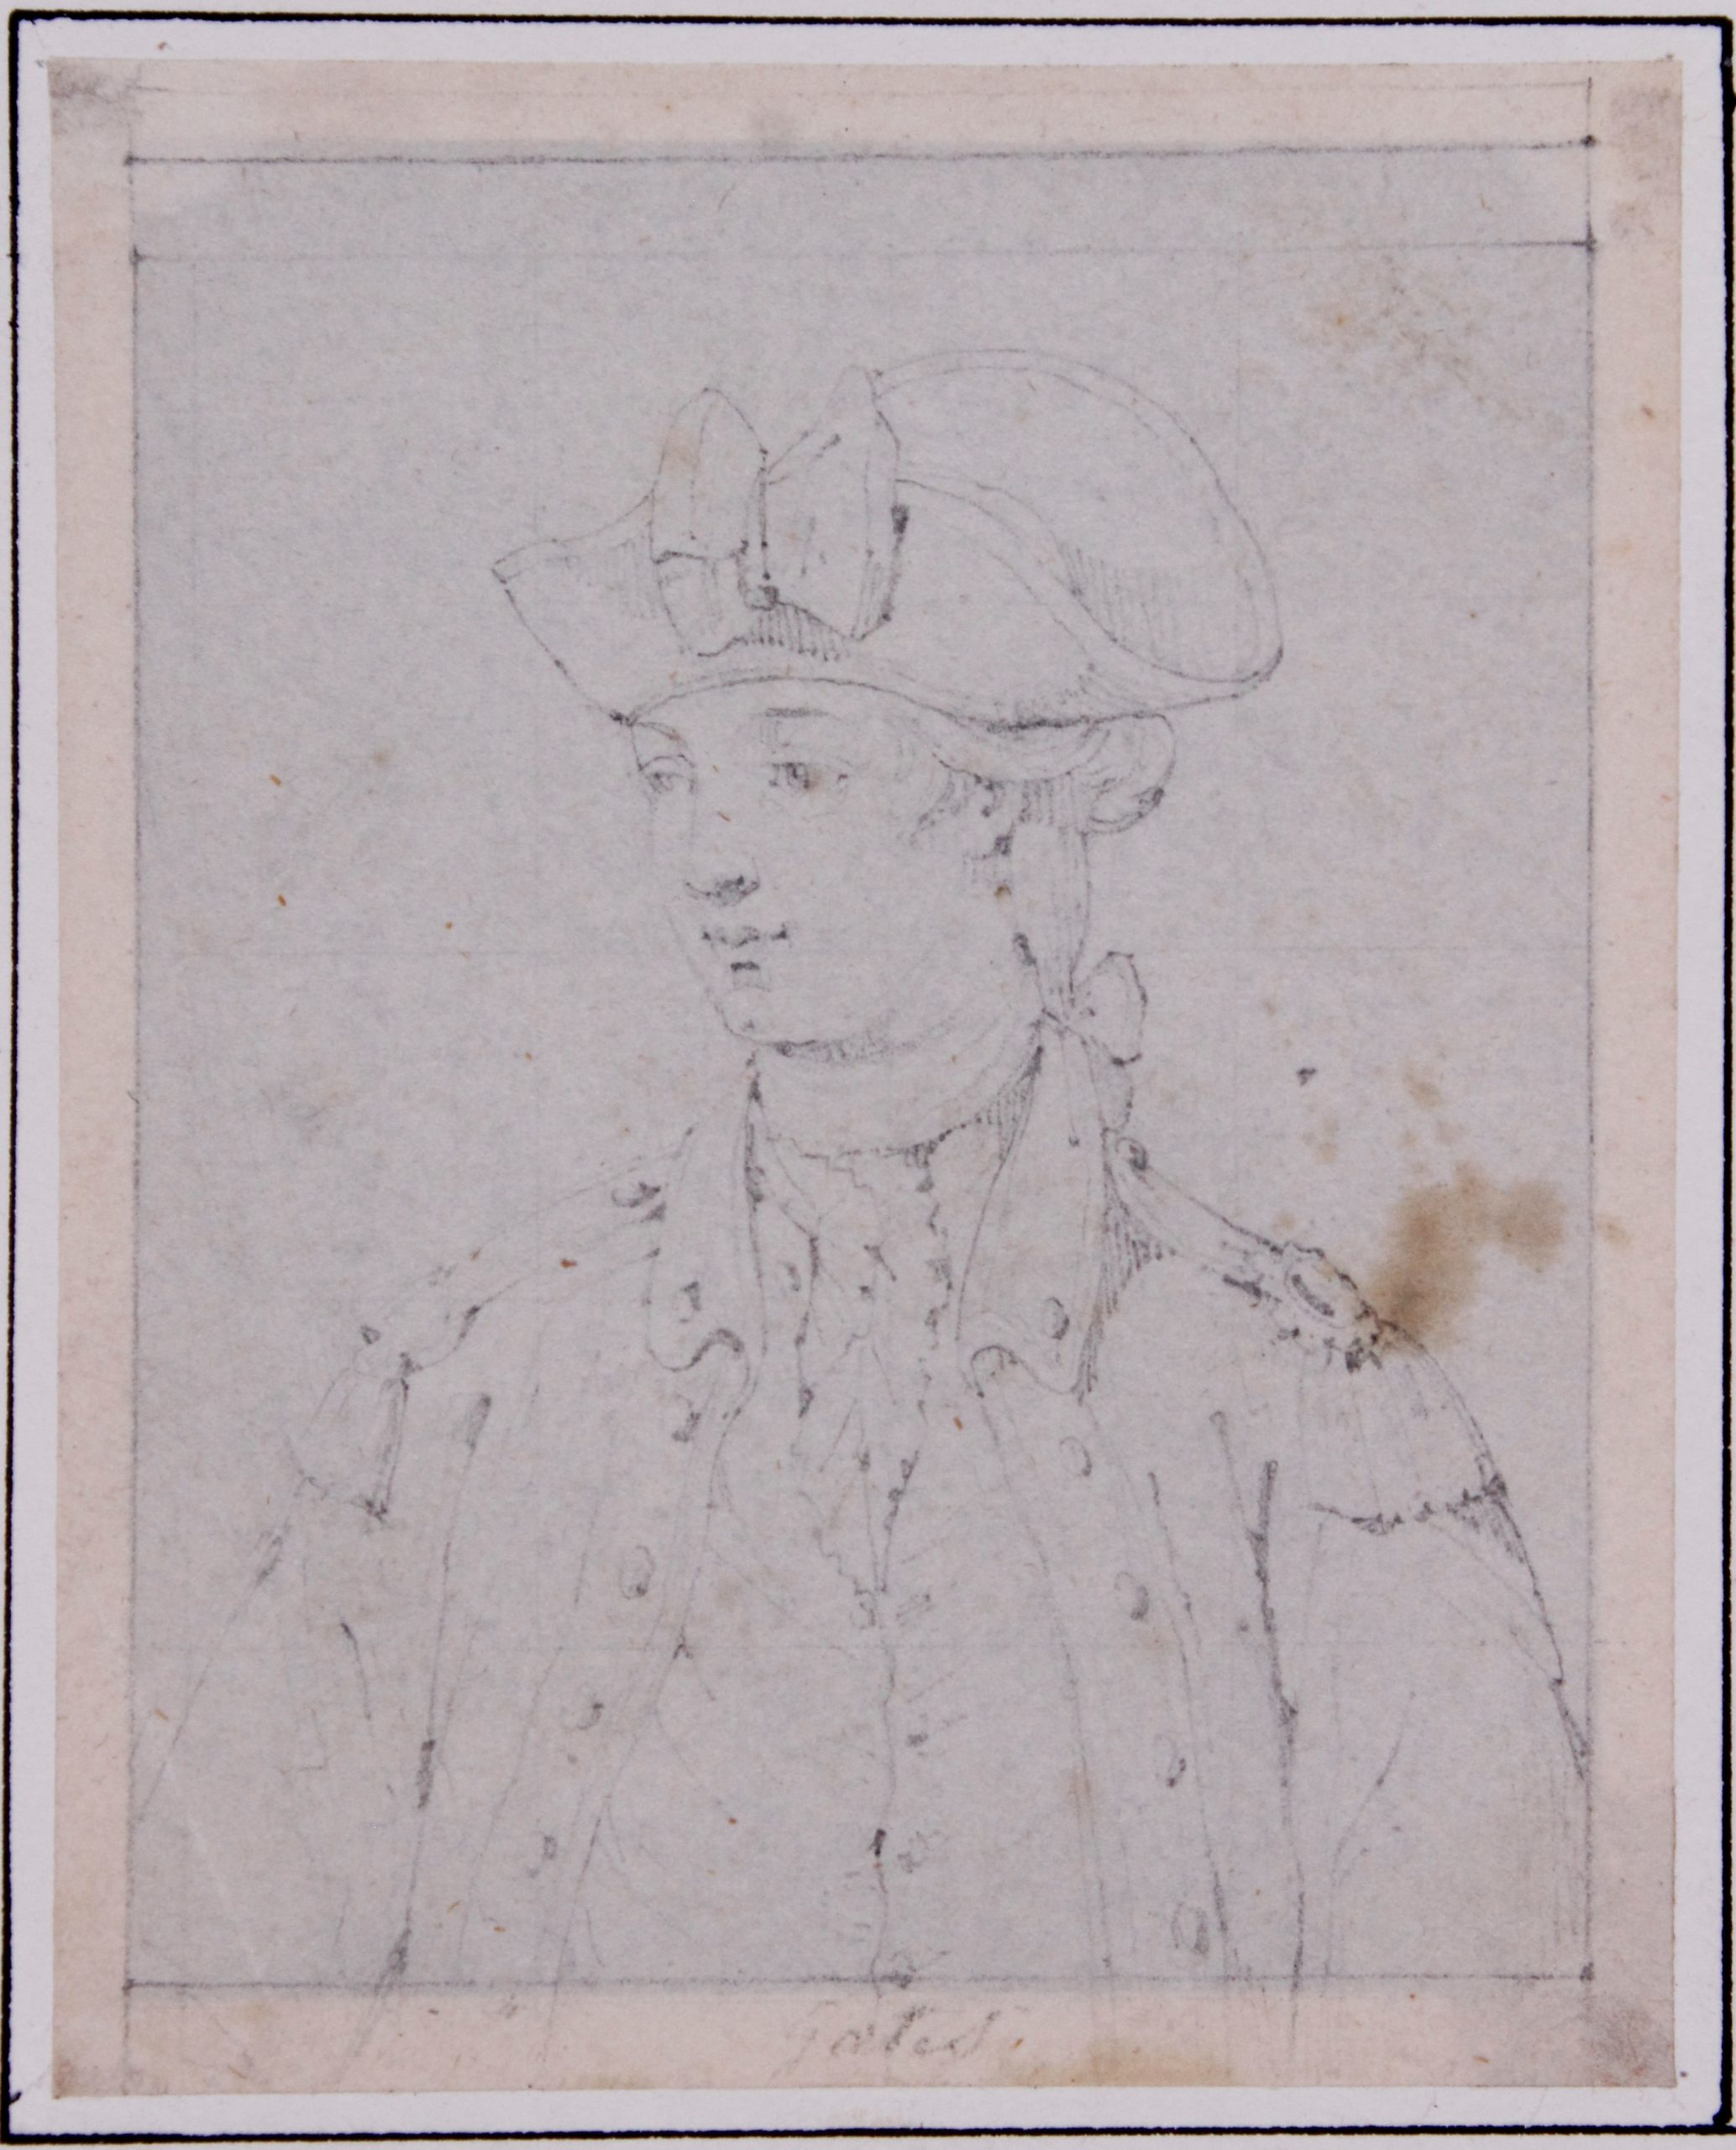 Under Horatio Gates' command the American Army made the decision to fortify Ticonderoga and Mount Independence in July 1776, and avoid the contagion of smallpox. This sketch, identified as General Gates, was found in the papers of Doctor Jonathan Potts in the Fort Ticonderoga Collections. (Fort Ticonderoga Museum Collections, Ms. 2102)